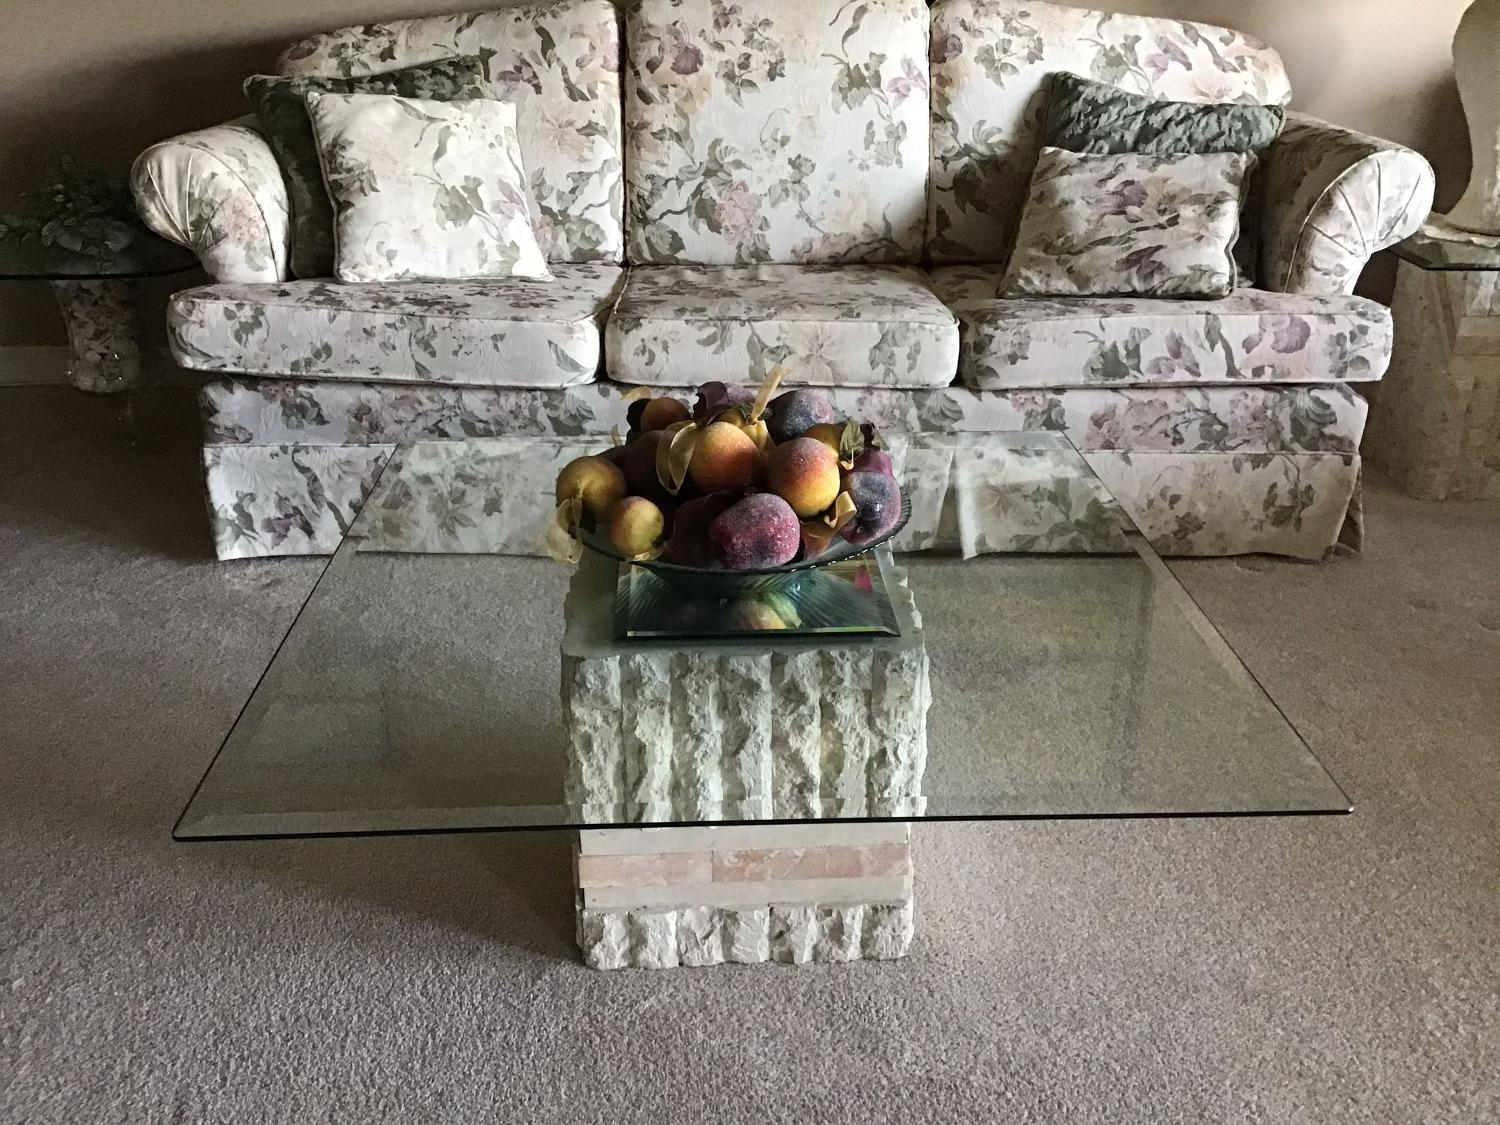 Best Glass Top And Stone Square Coffee And End Tables For Sale In Edmonton Alberta For 2021